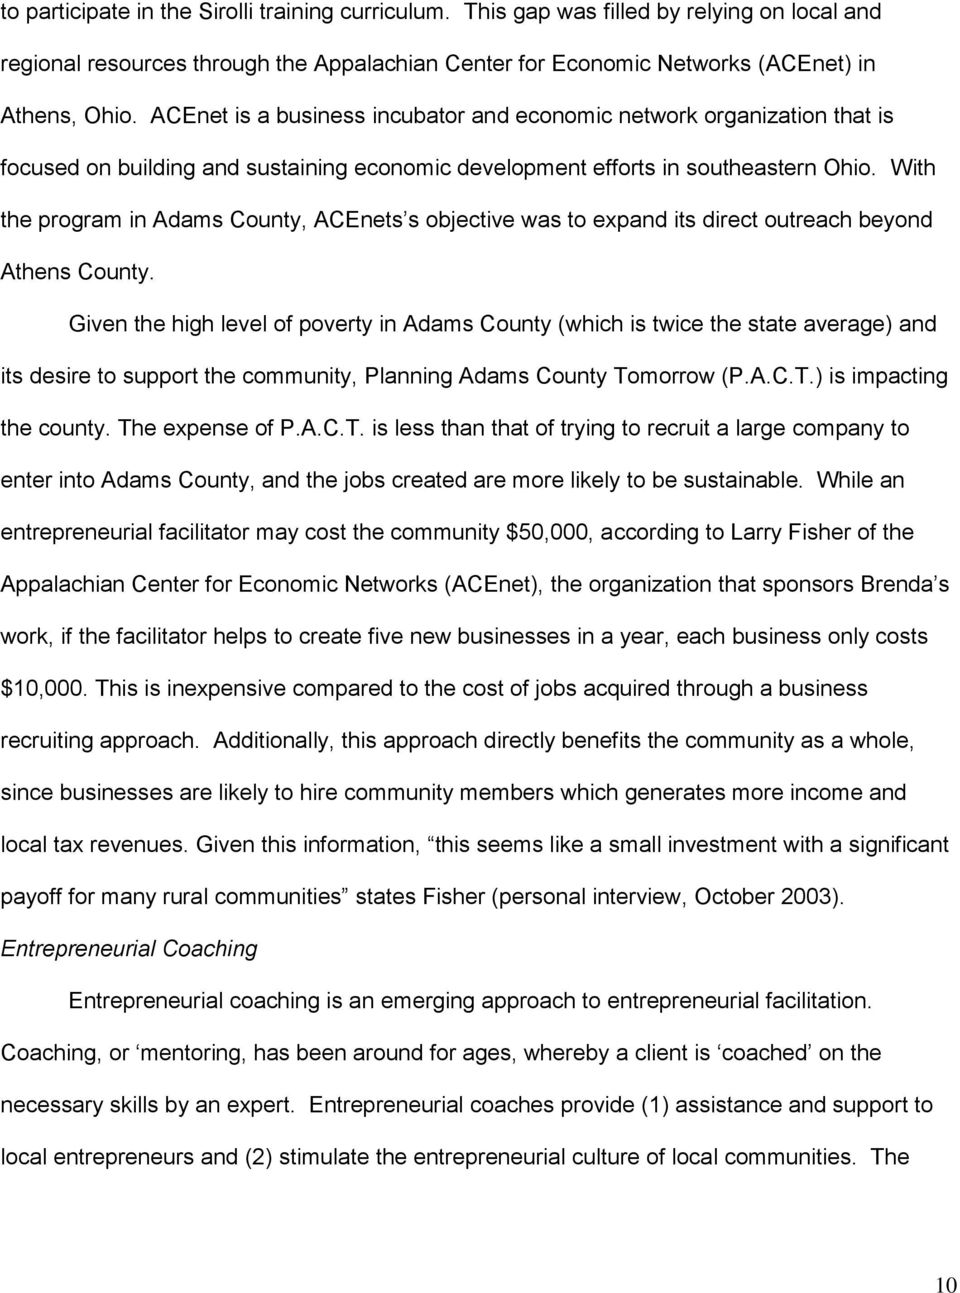 With the program in Adams County, ACEnets s objective was to expand its direct outreach beyond Athens County.